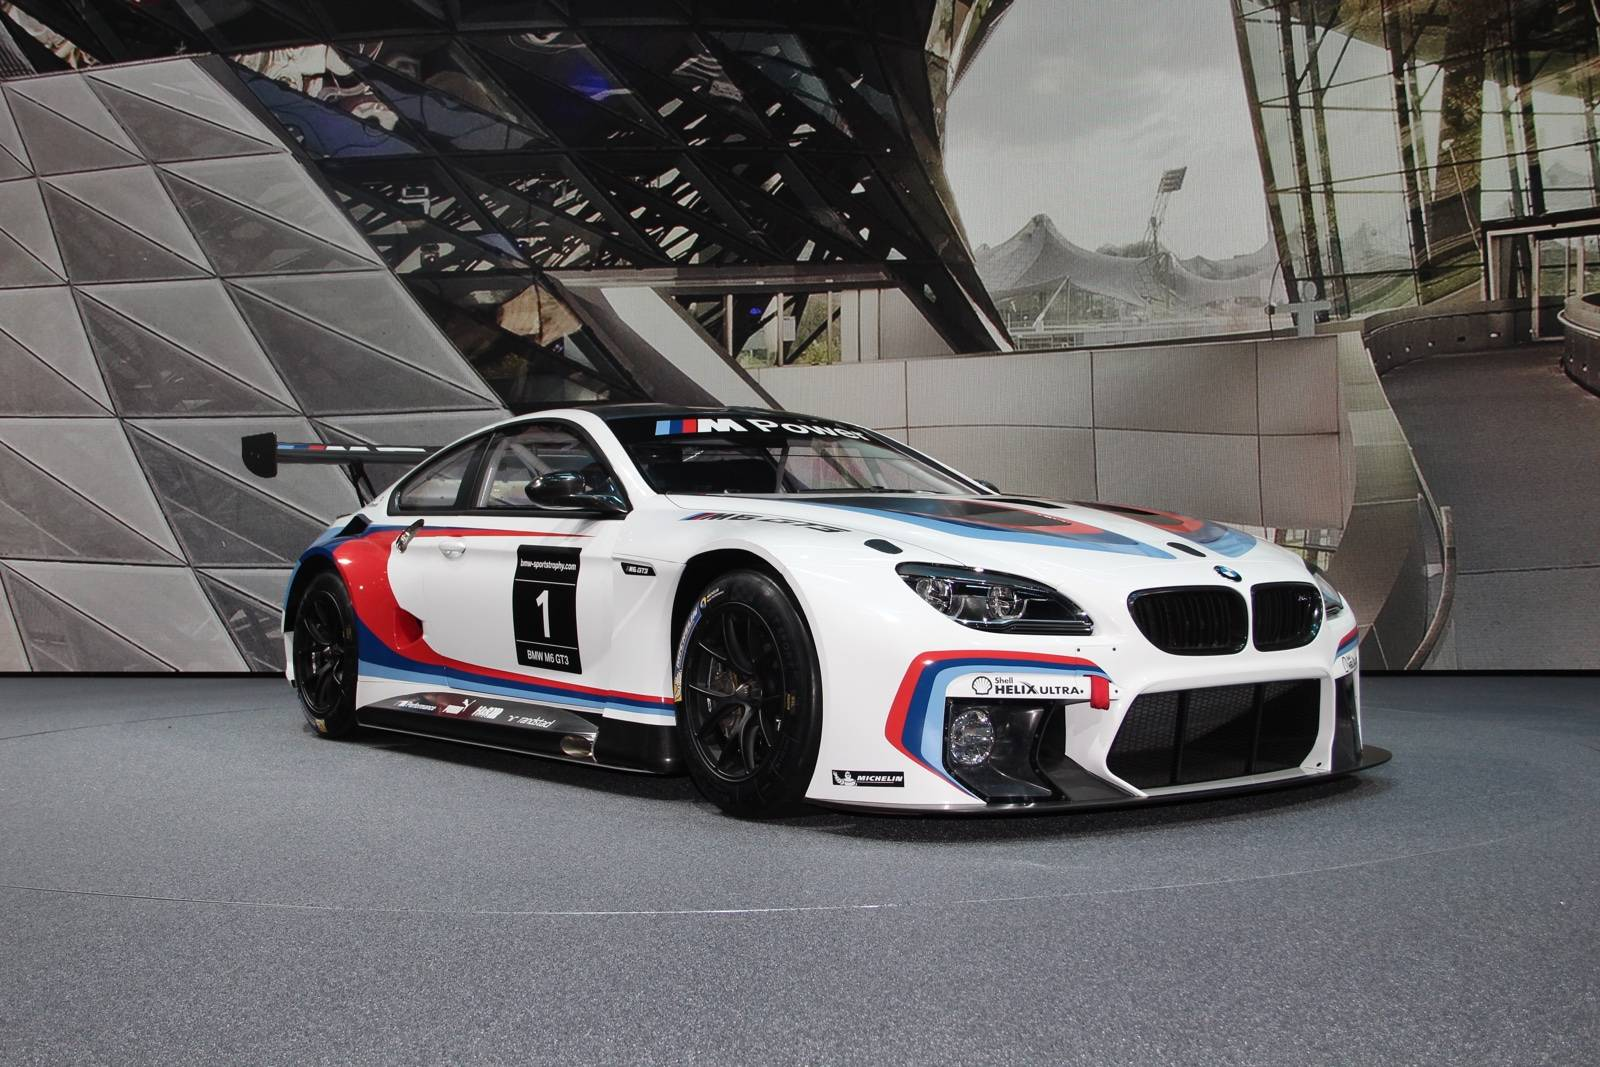 First Batch Of Bmw M6 Gt3s Delivered To Teams Gtspirit